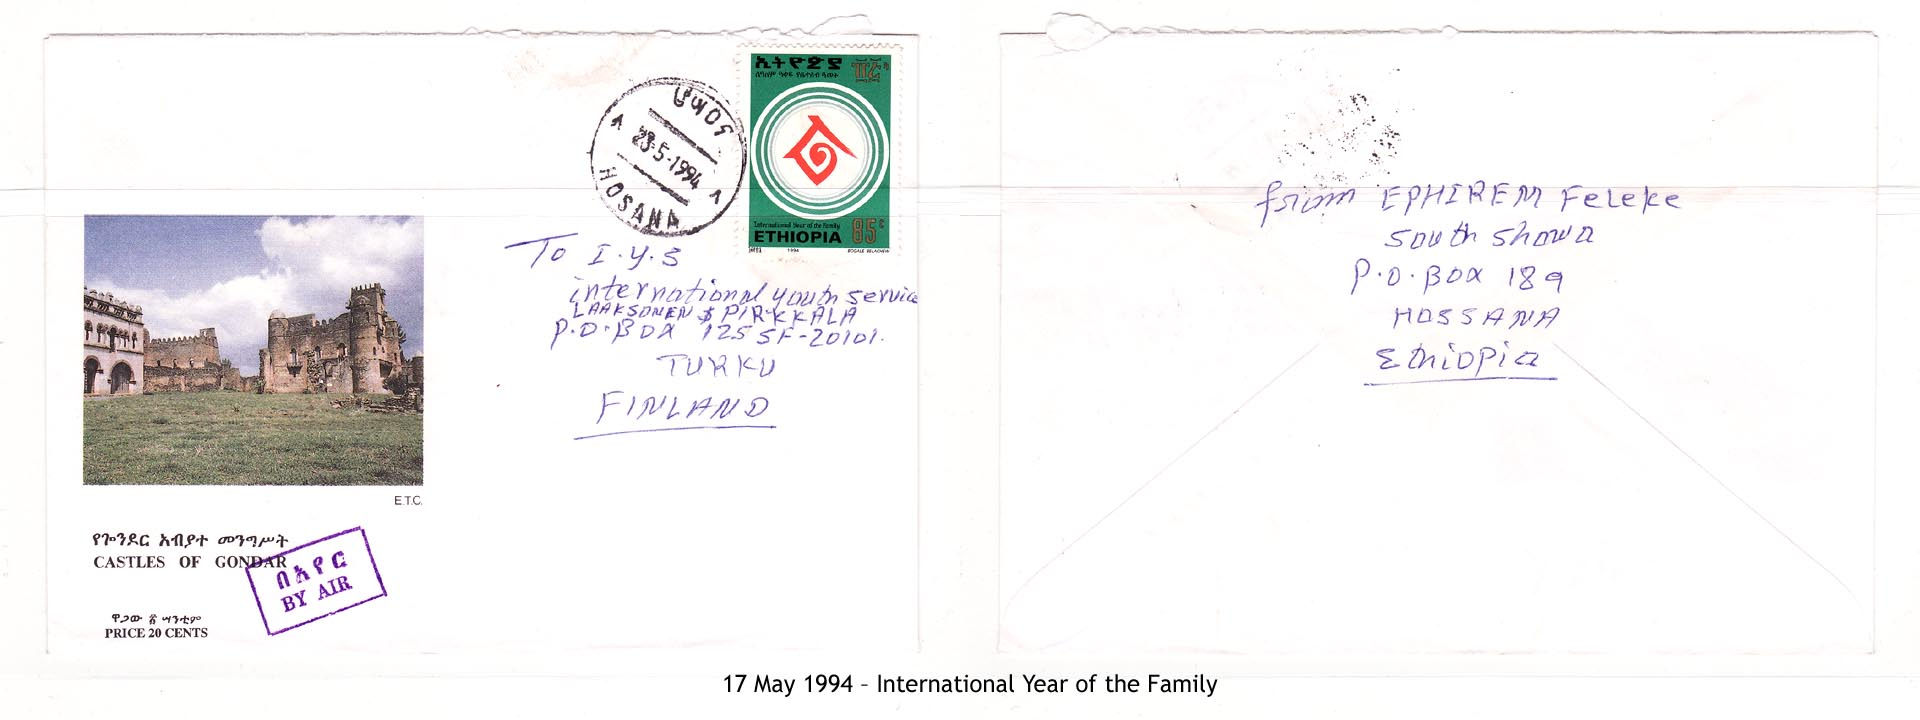 19940517 – International Year of the Family